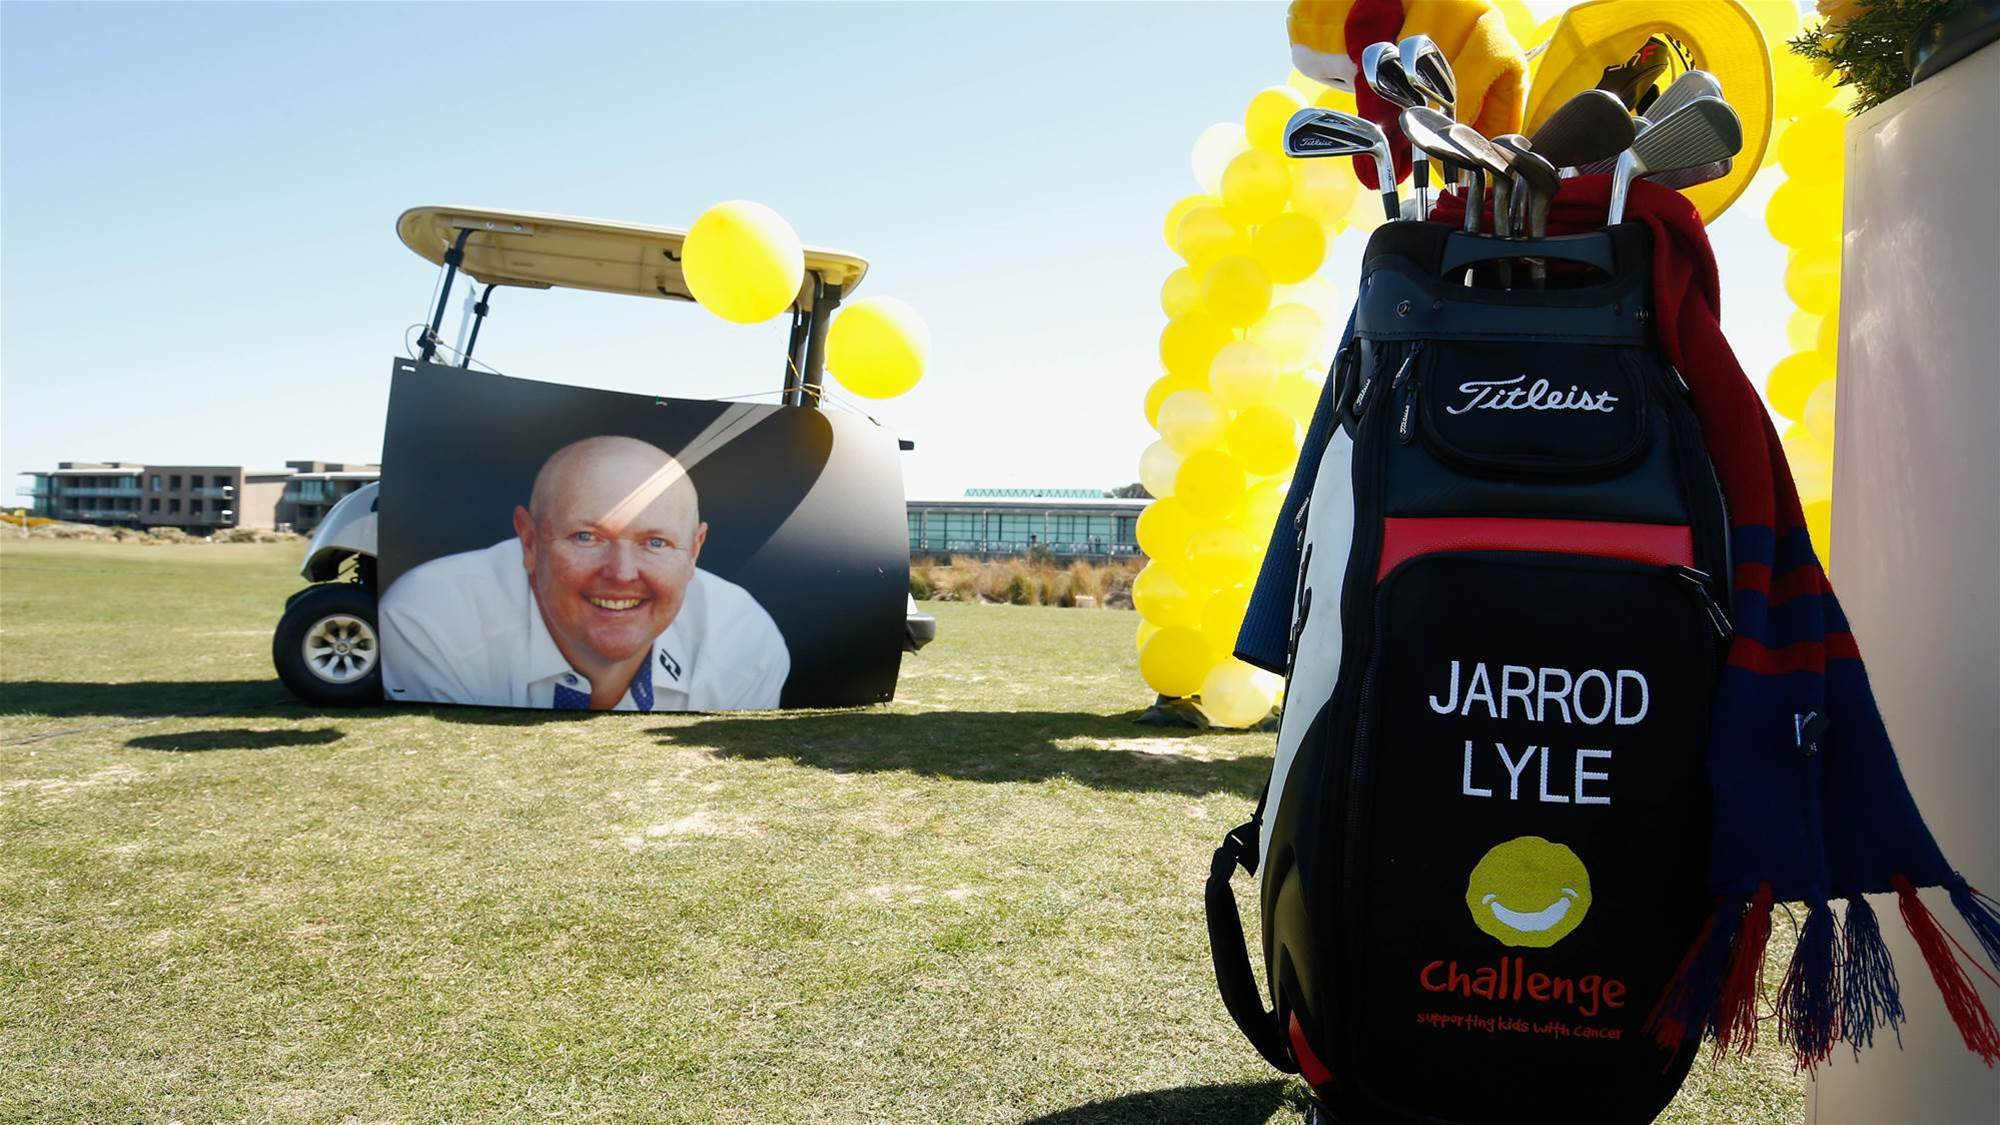 Jarrod Lyle celebrated at memorial service